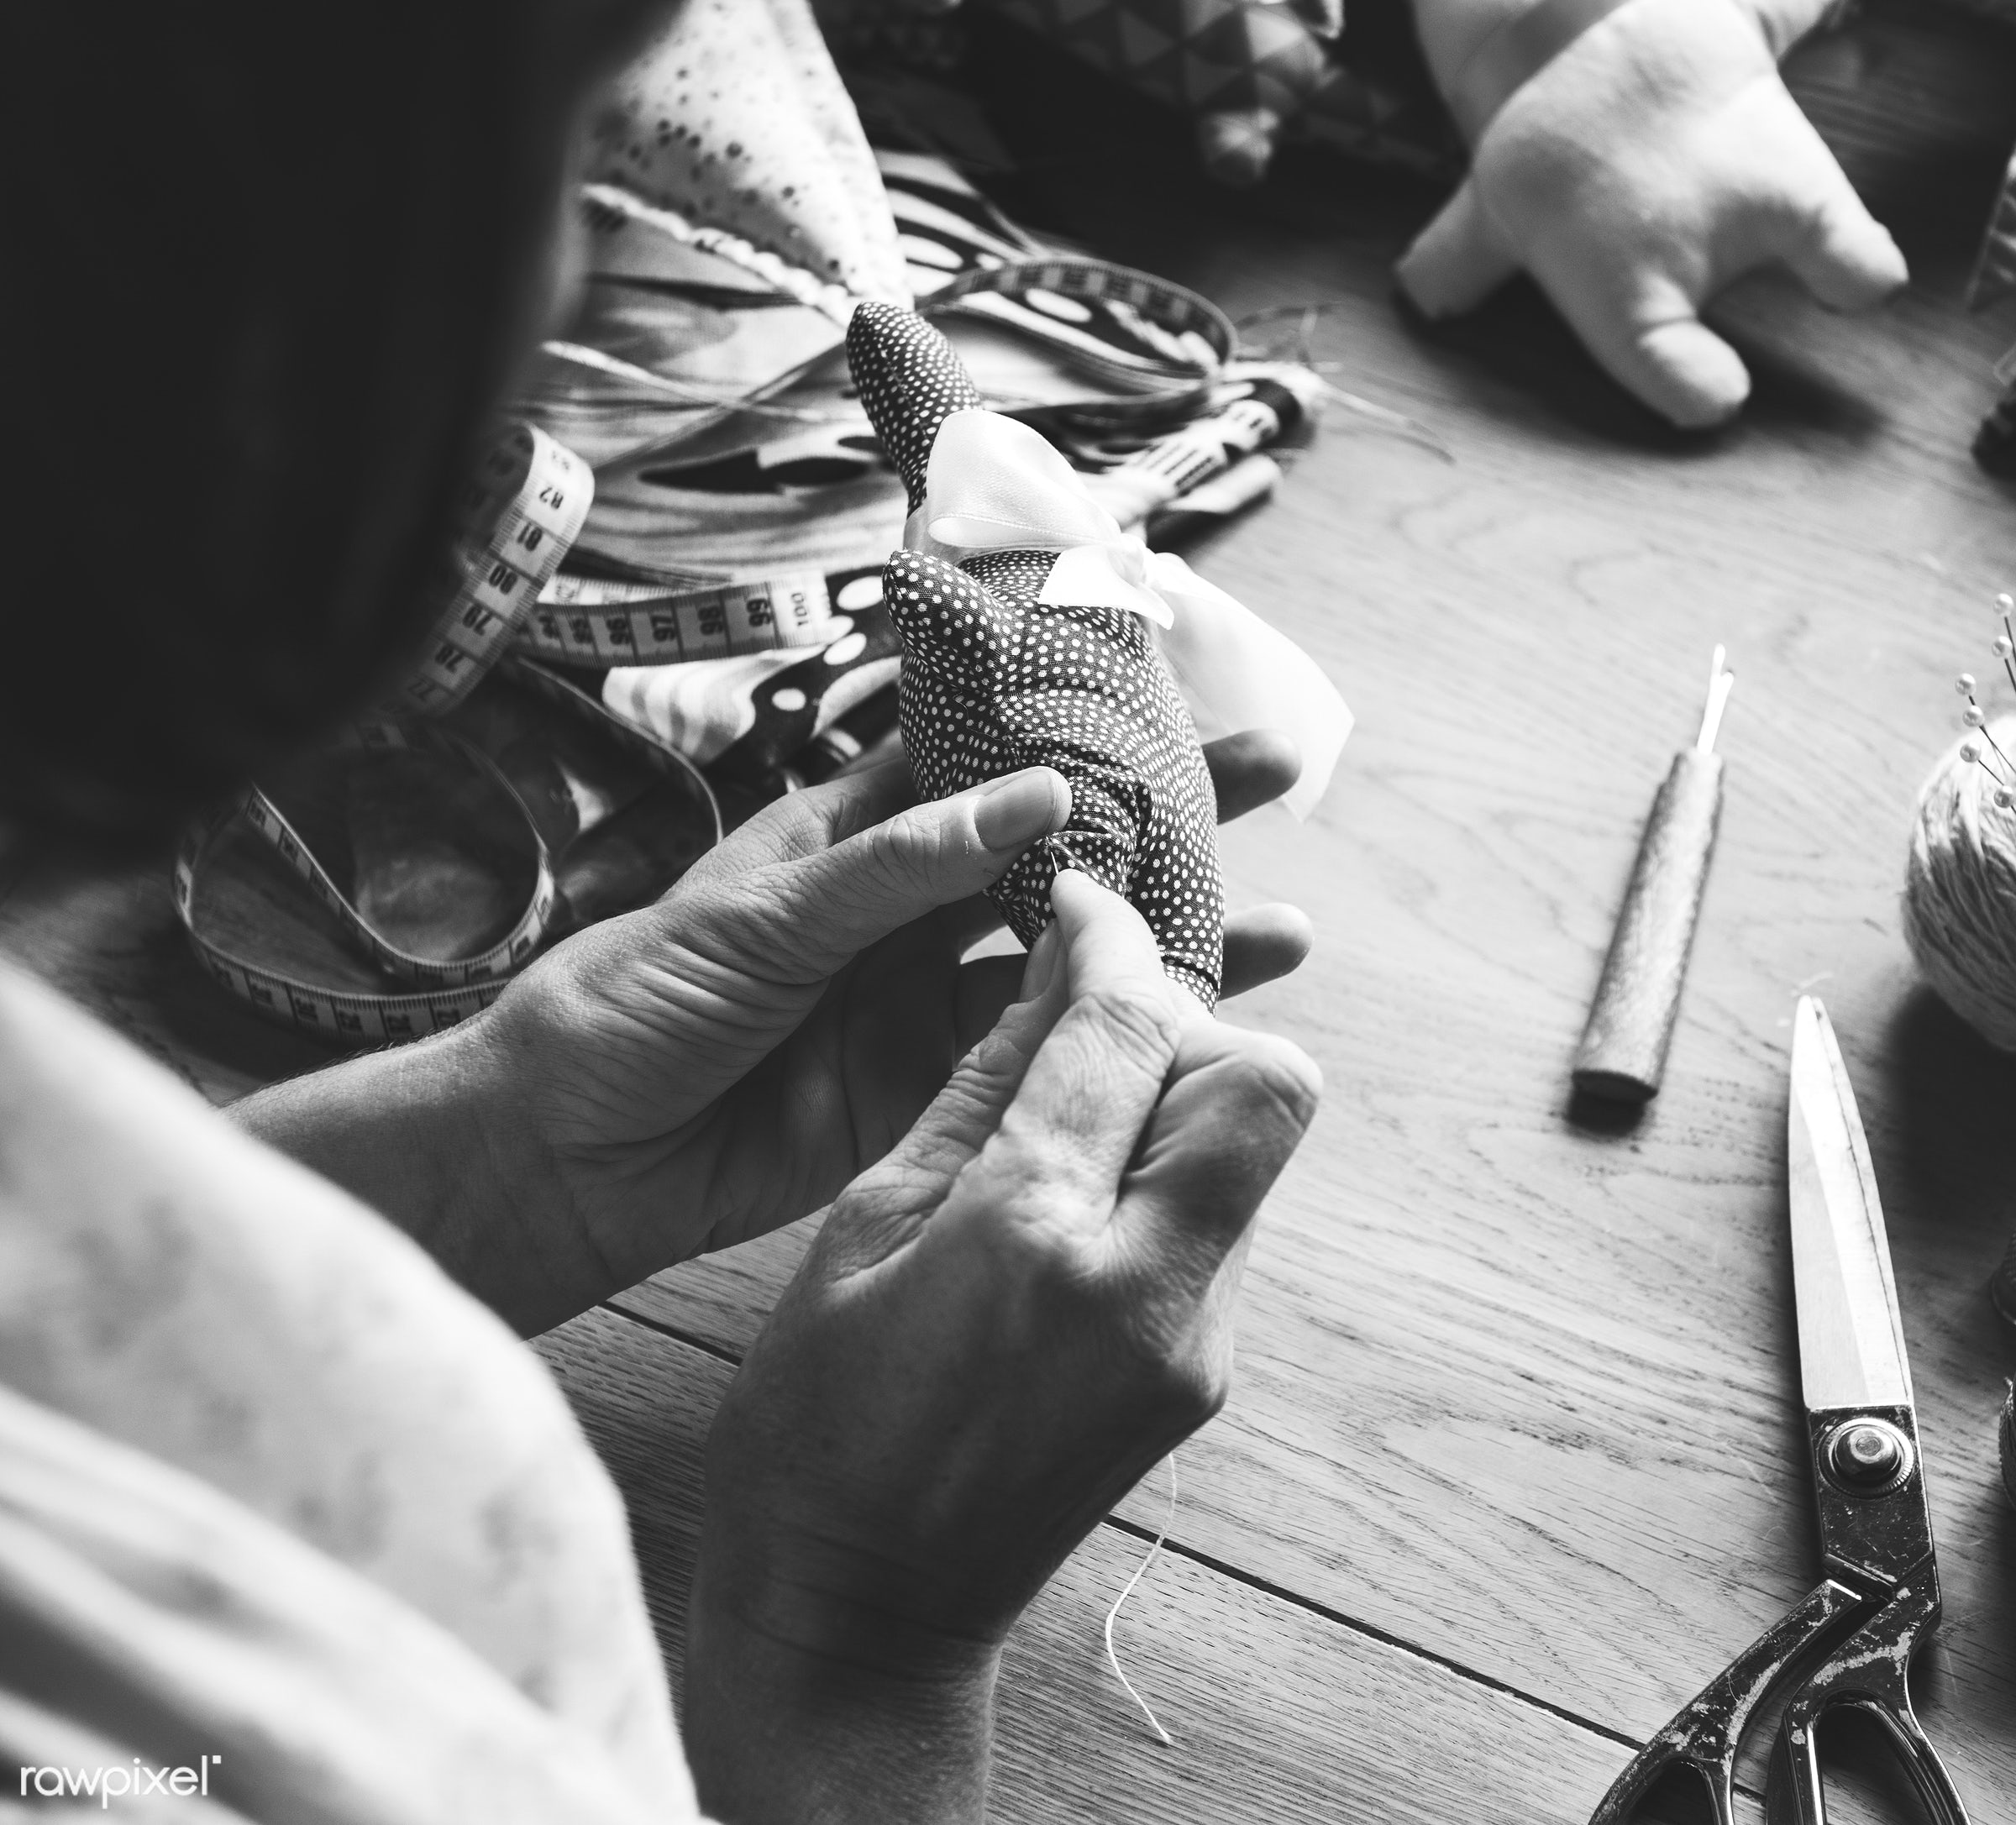 workspace, handicraft, workplace, stitching, equipment, tools, cloth, hands, lifestyle, thread, making, working, aerial view...